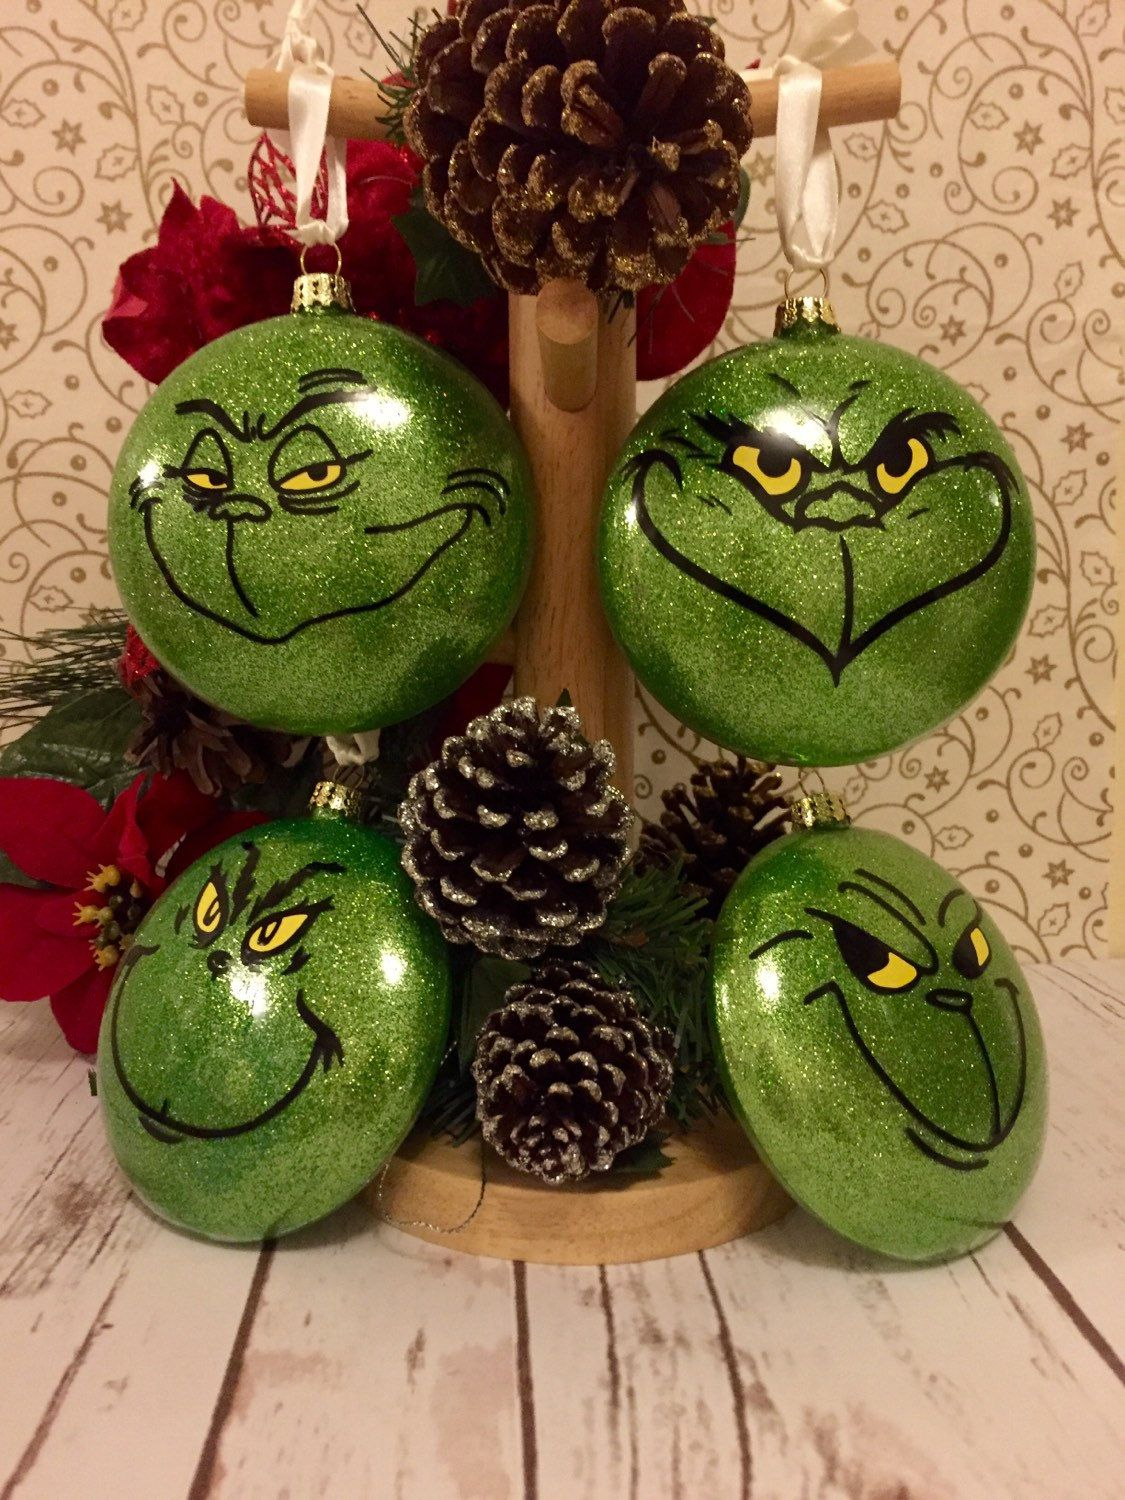 Christmas Ornaments Set Grinch Baubles Of 4 Tree Decorations 2200 GBP By